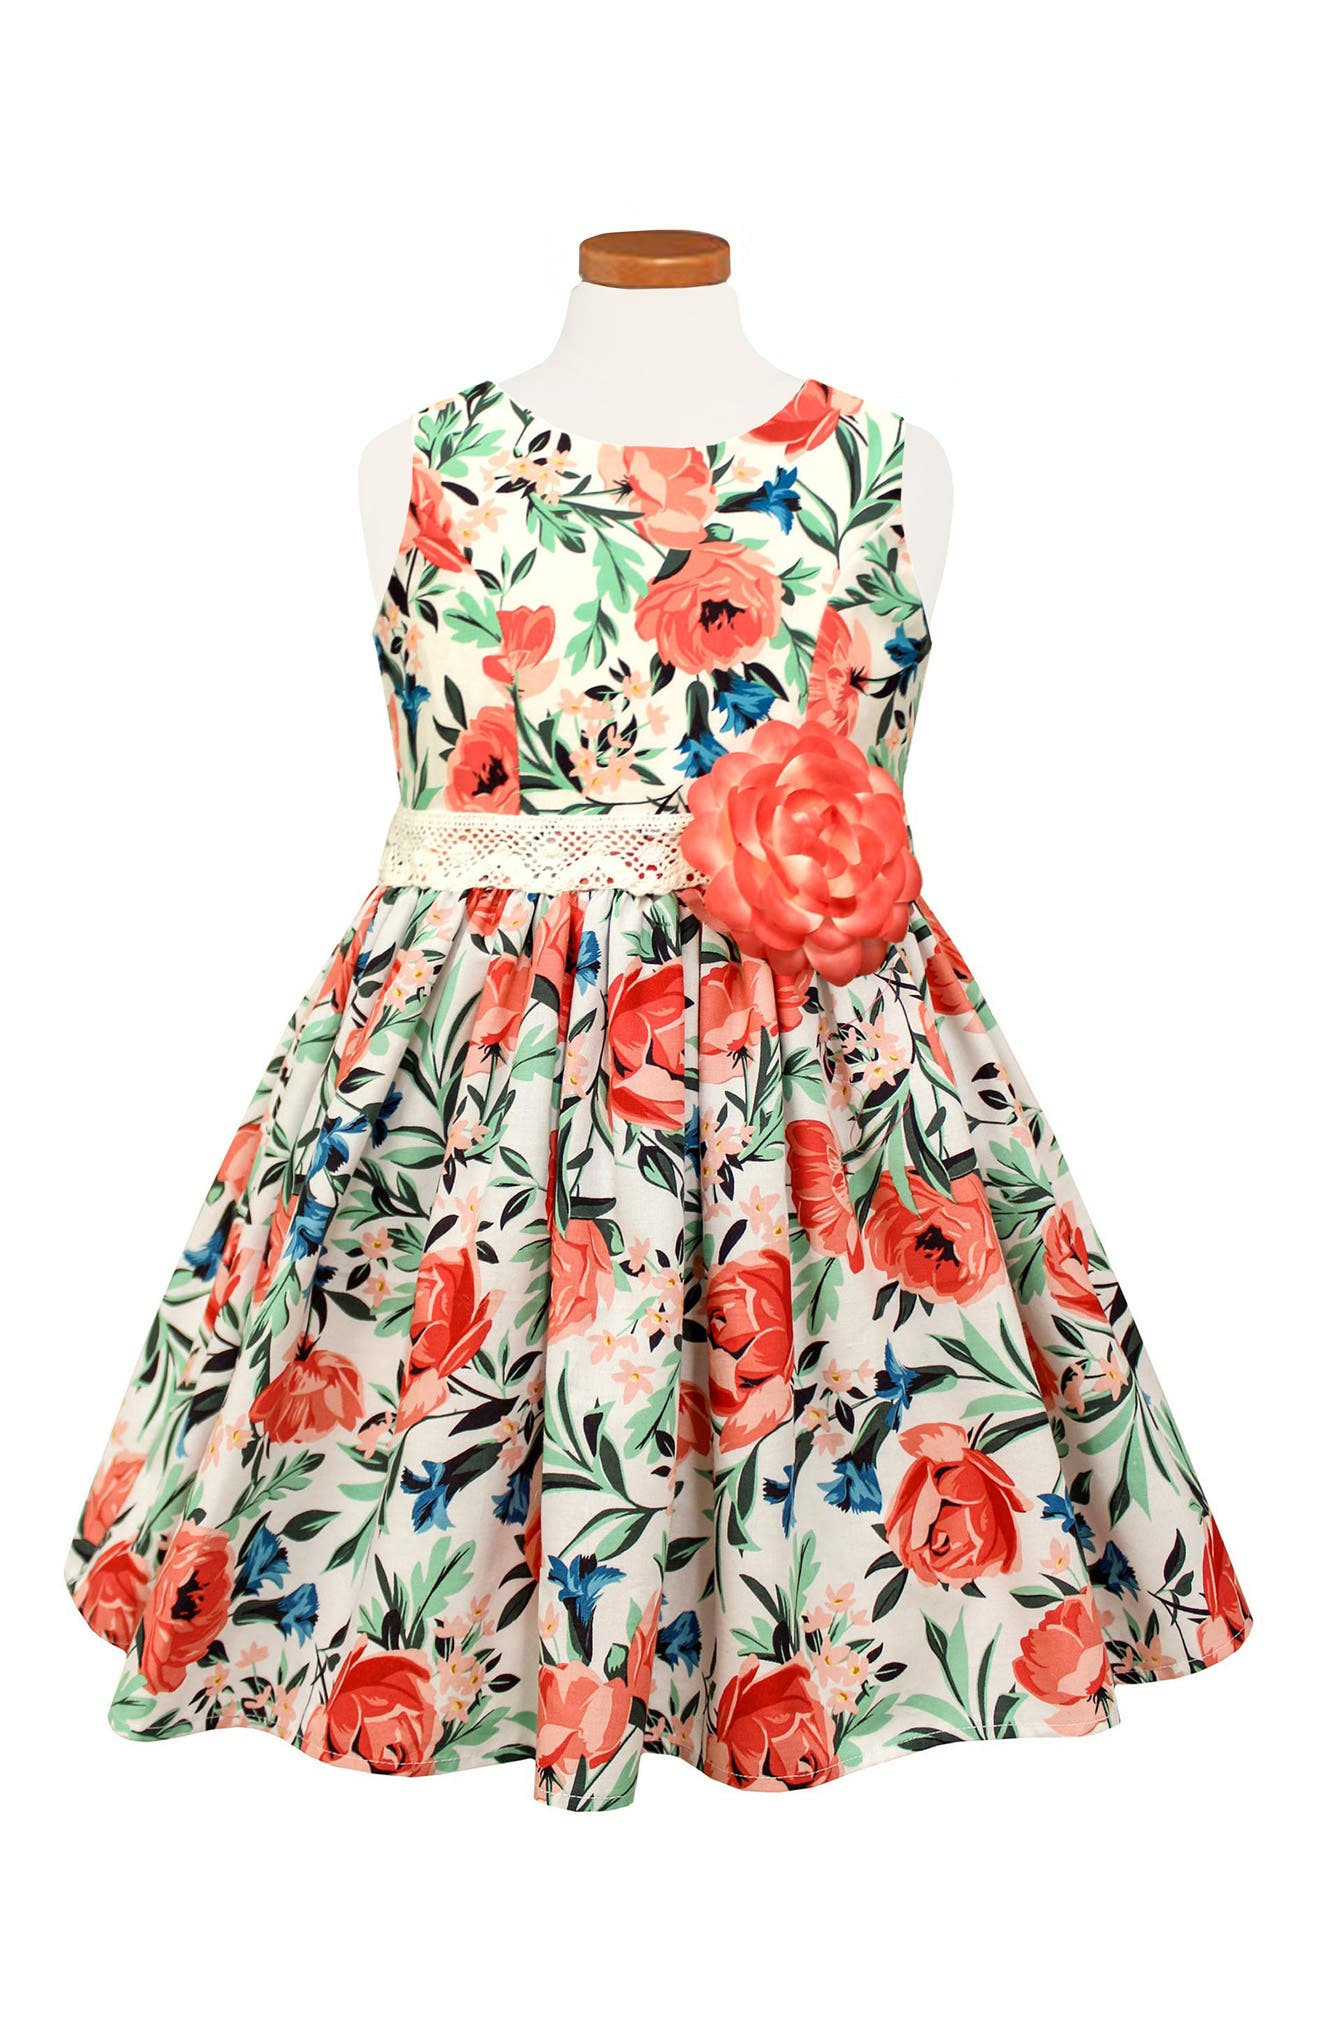 SORBET Floral Print Sleeveless Dress